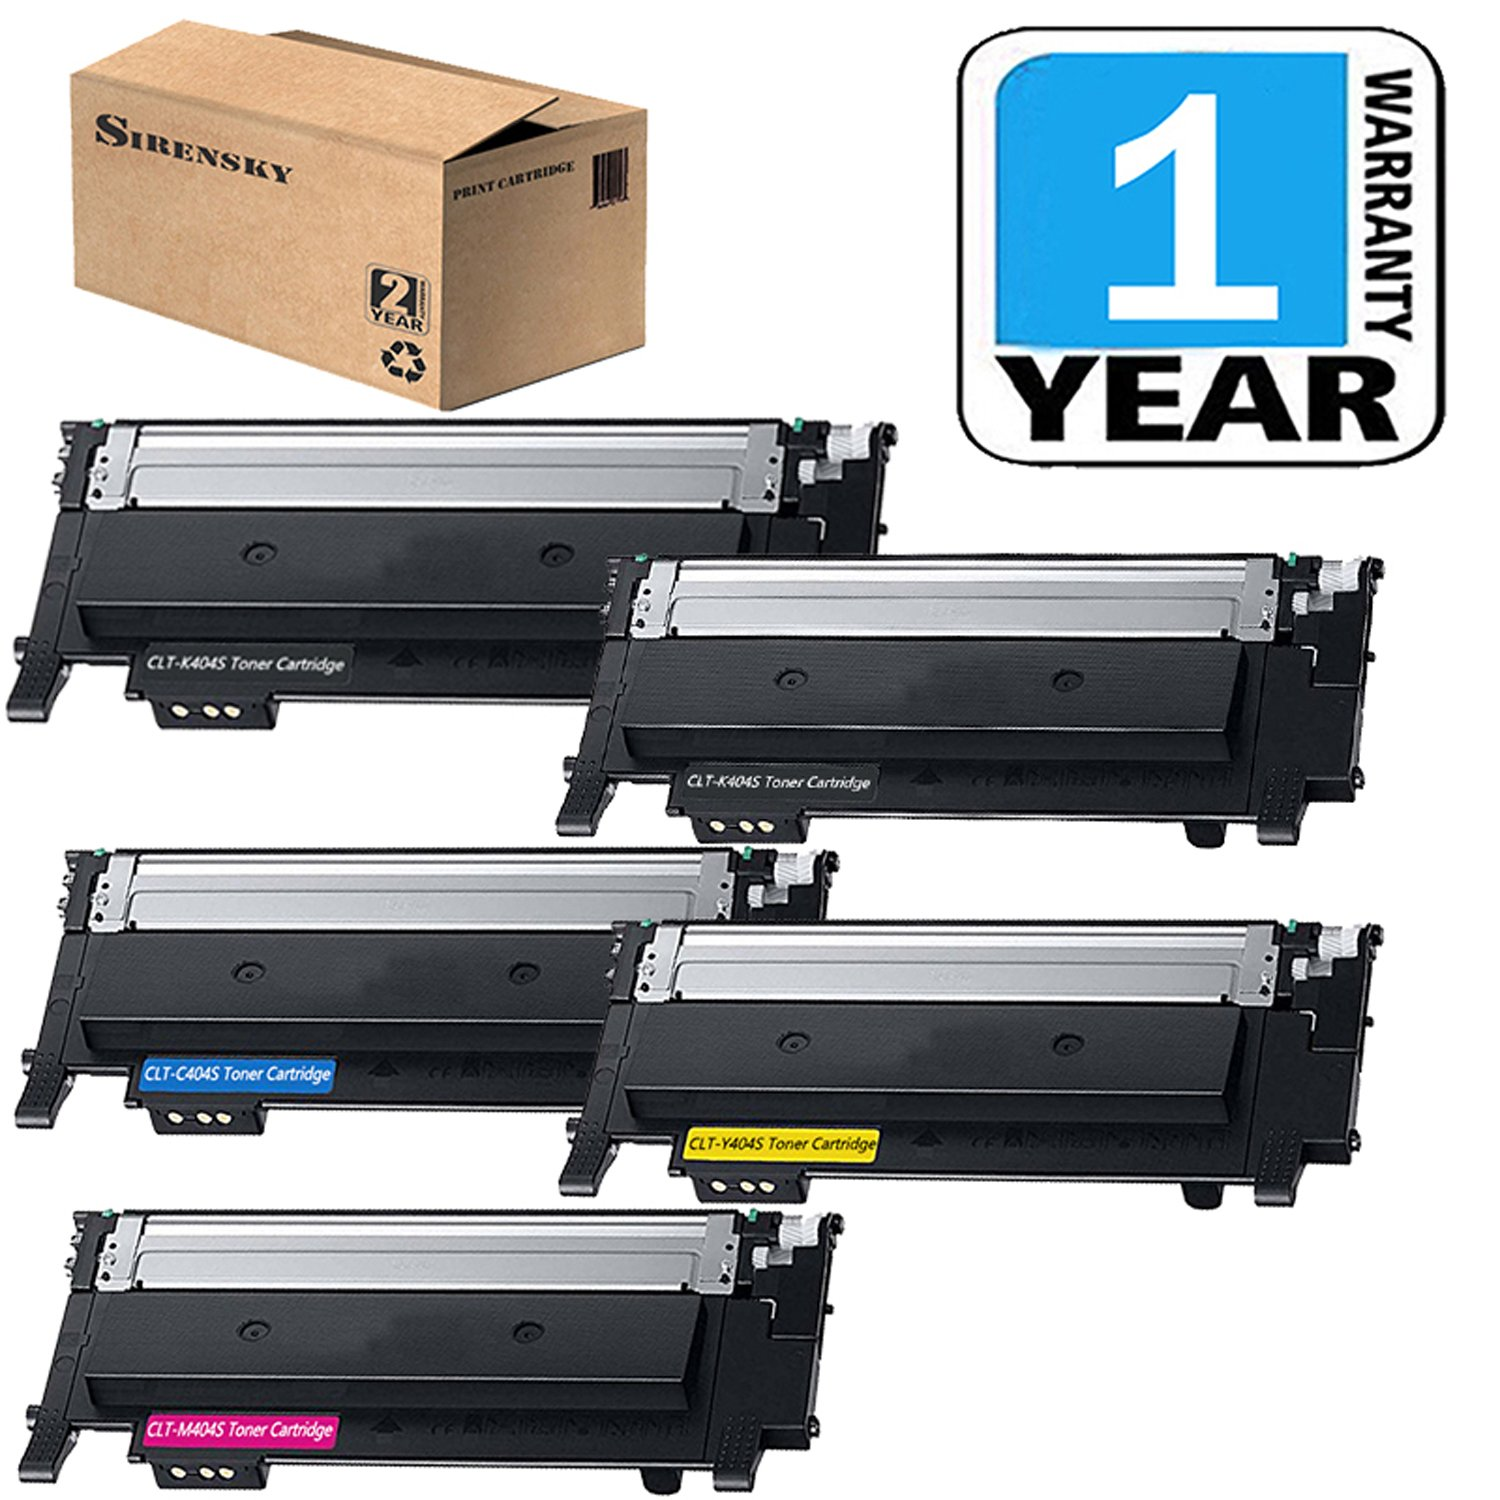 CLT-K404S CLT-C404S CLT-Y404S CLT-M404S Toner Cartridge of 5 Pack Compatible for Samsung 404 404S Toner Set, use in Xpress C430W C480FW Laser Printer, Sirensky by Sirensky